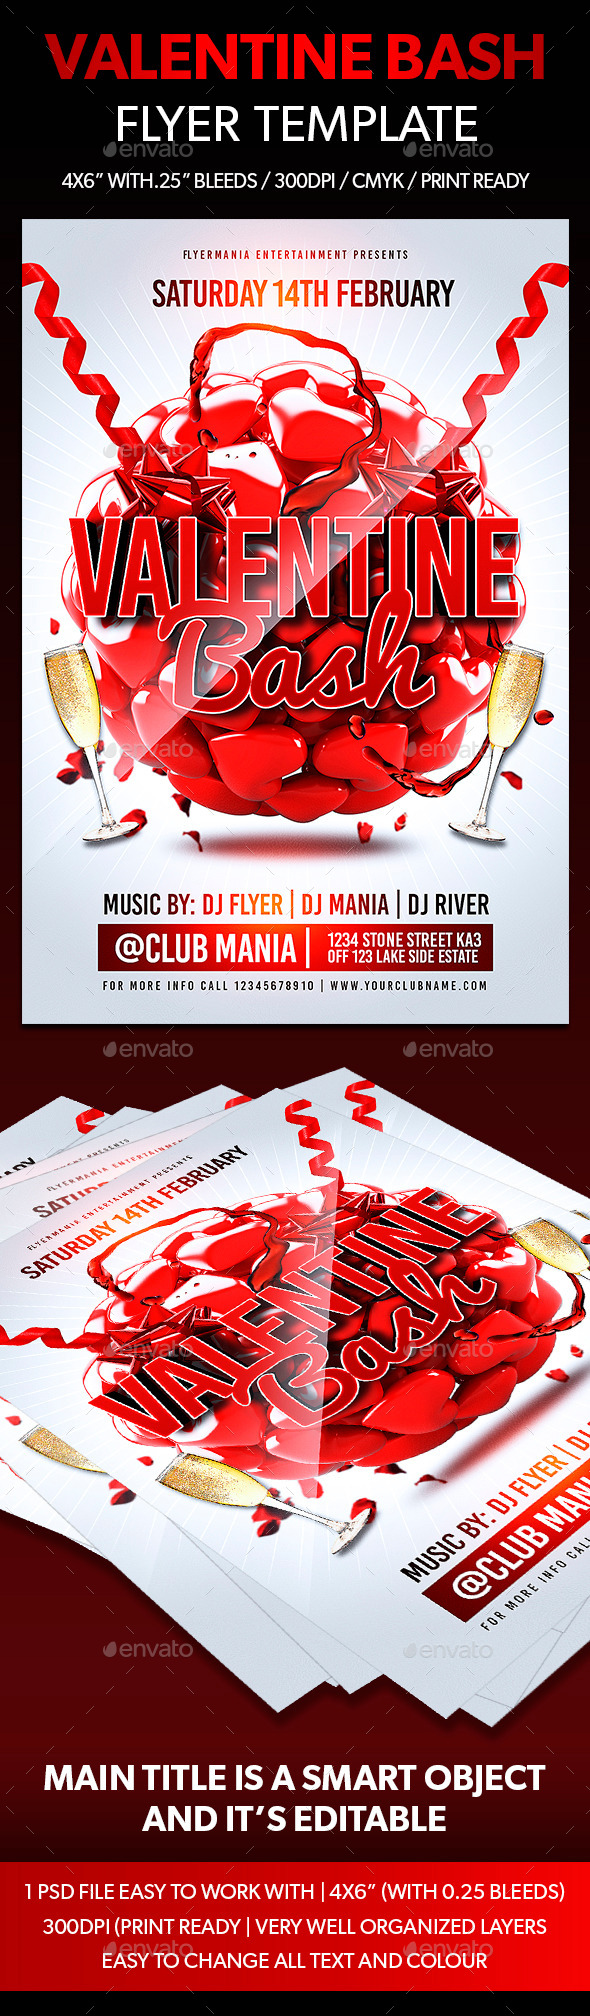 Valentine Bash Flyer Template